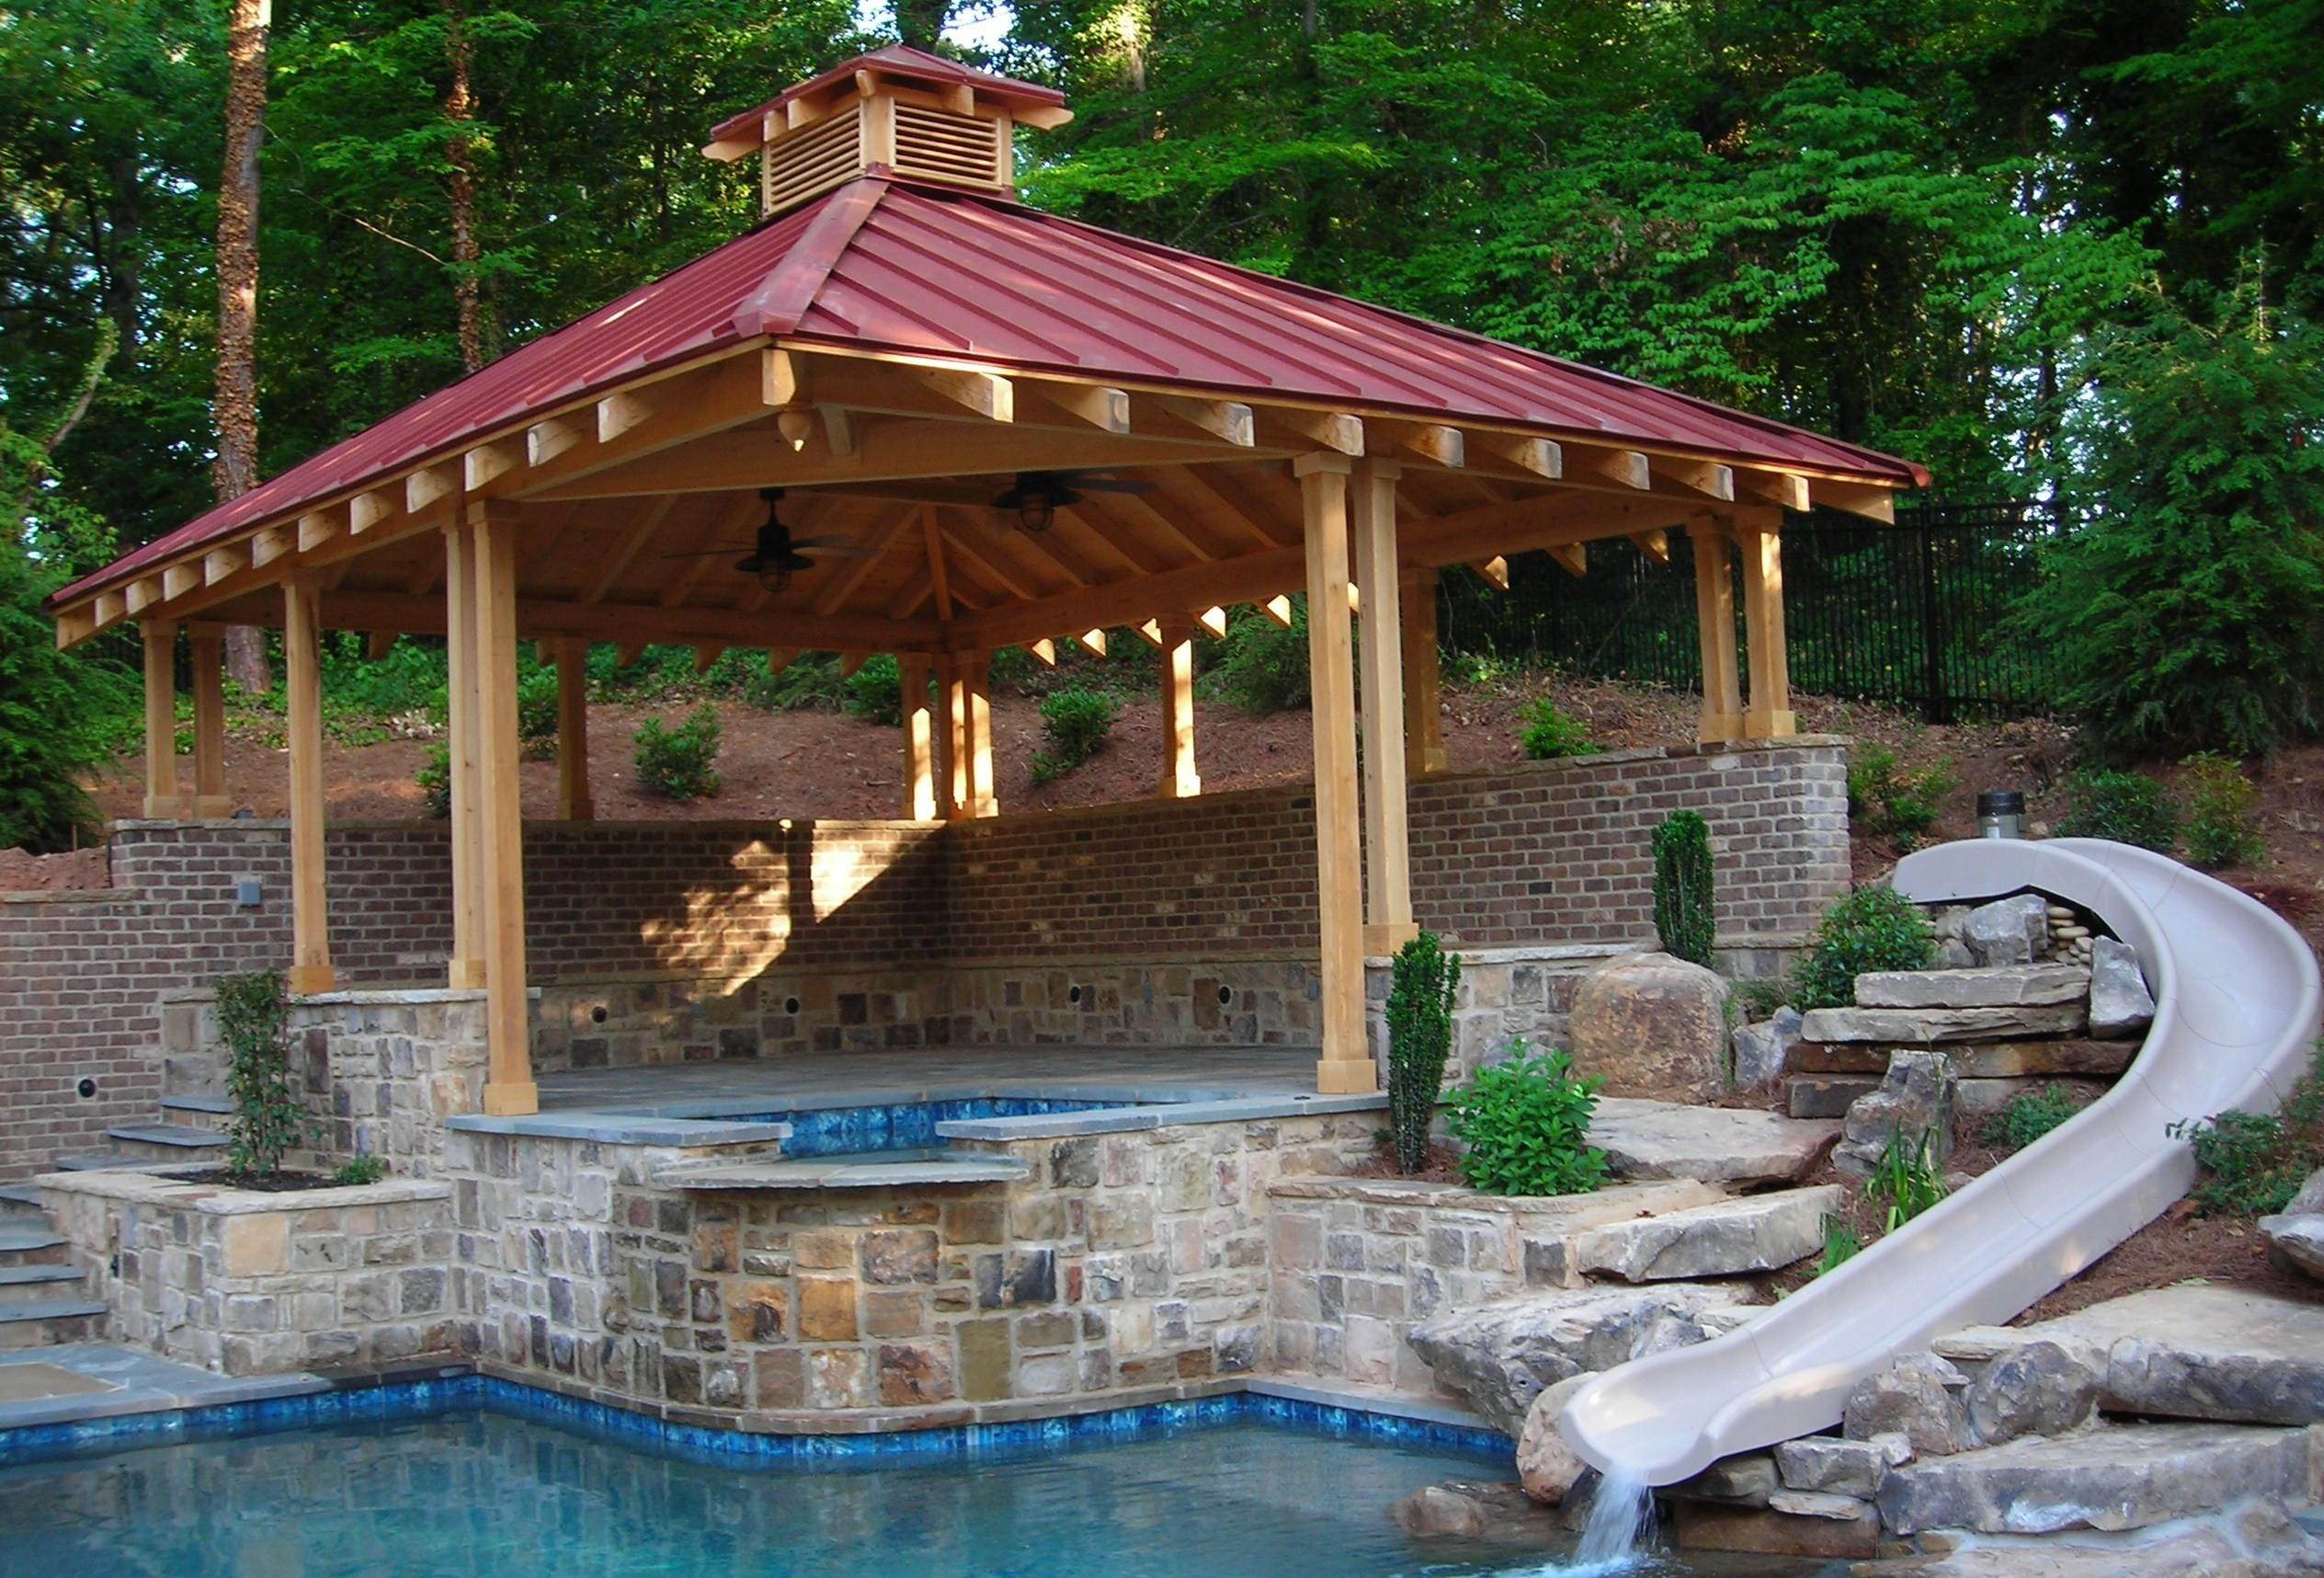 Lawn Garden Outdoor Gazebo Designs Backyard Patio